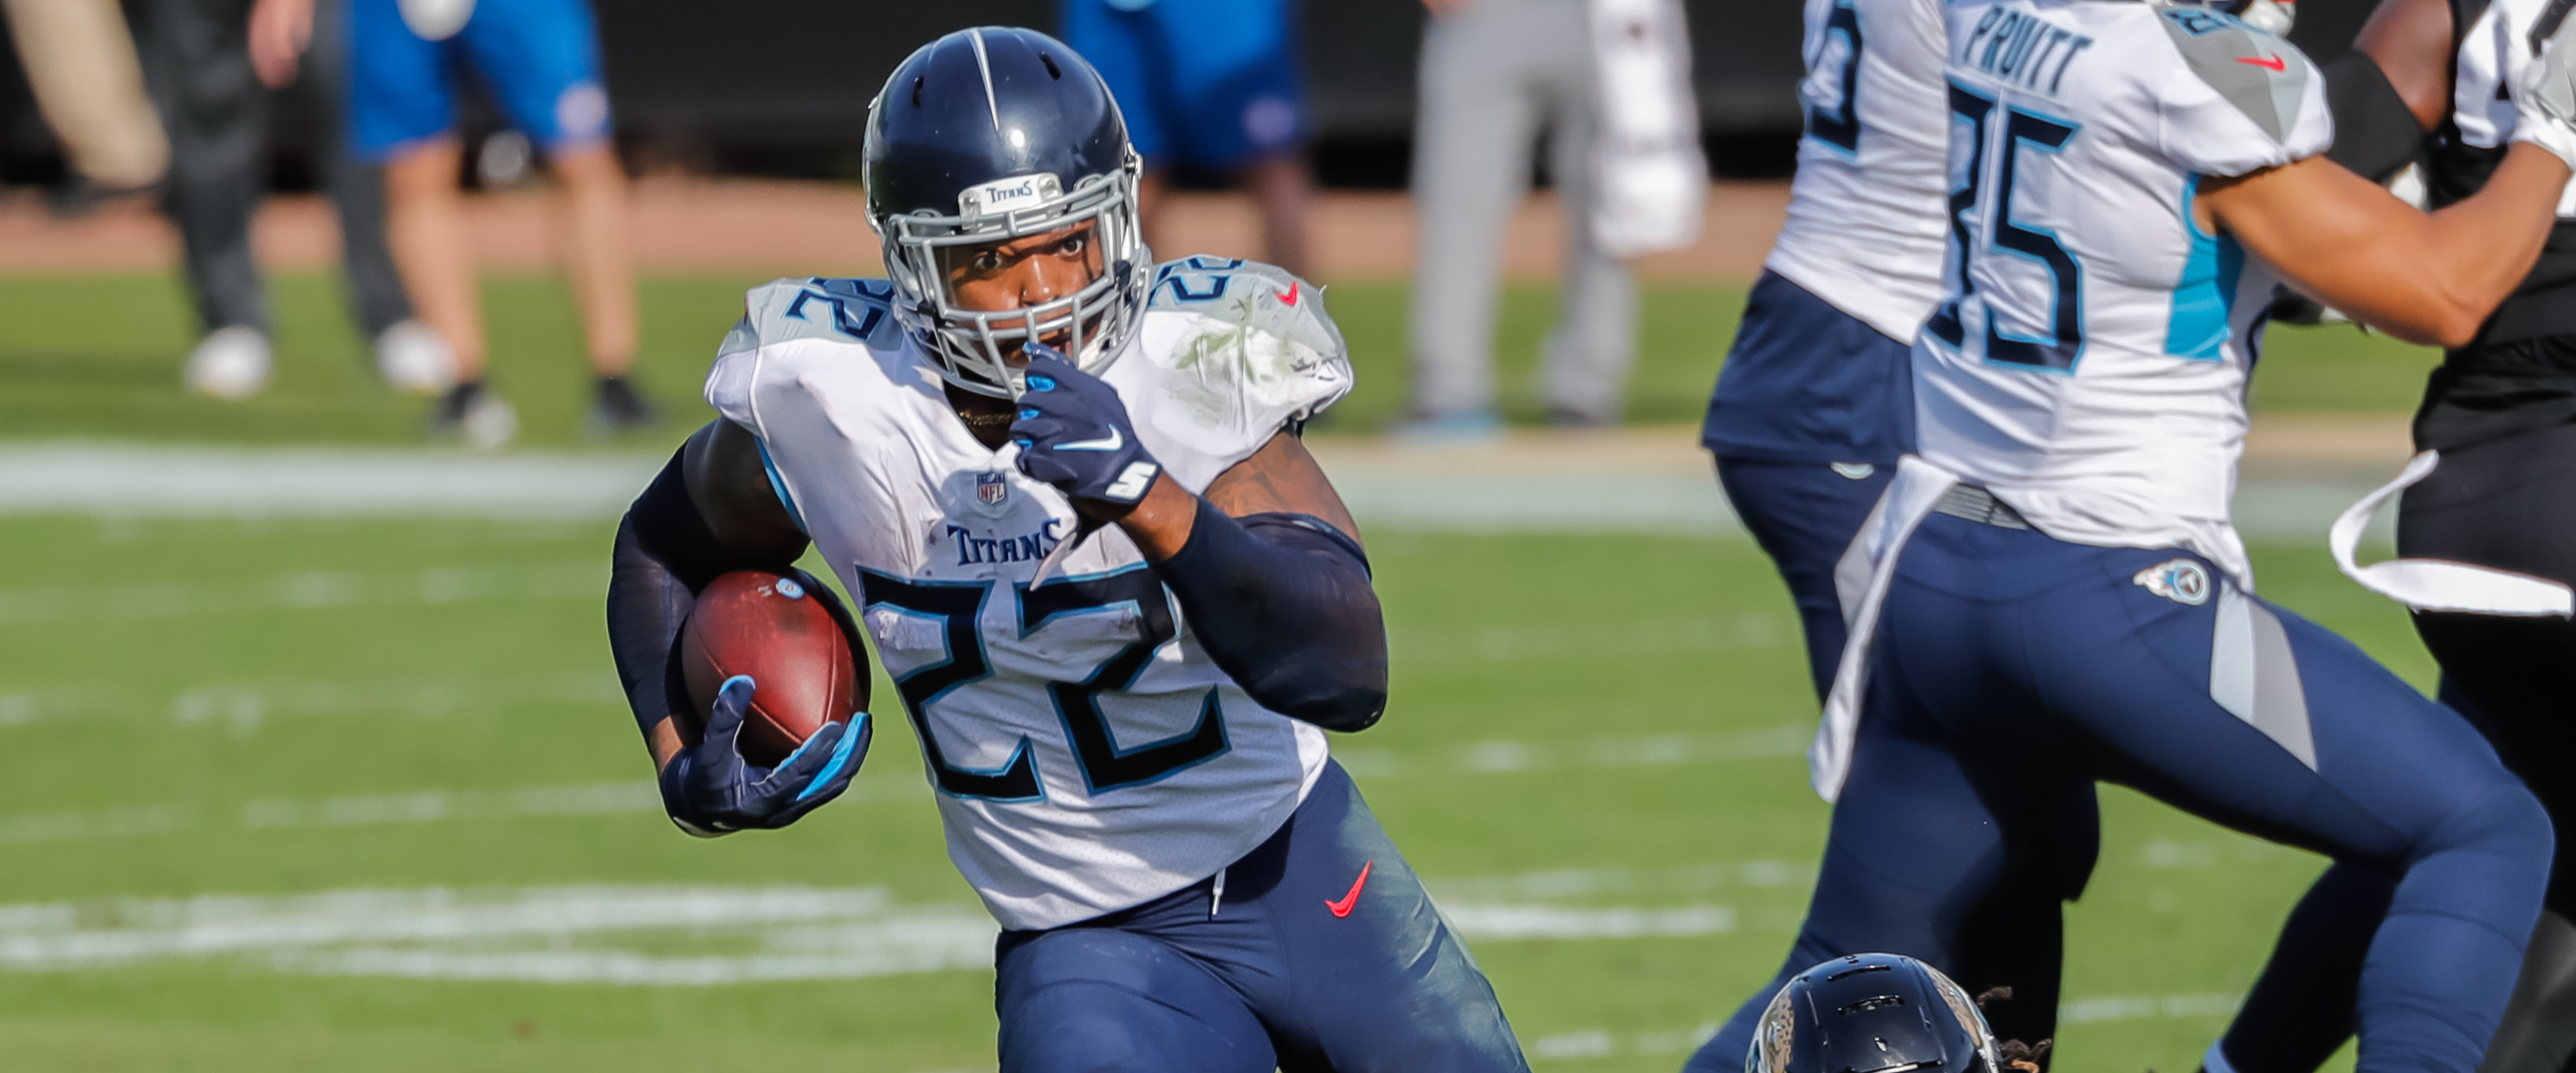 Can Derrick Henry reach 2,000 rushing yards in 2020?